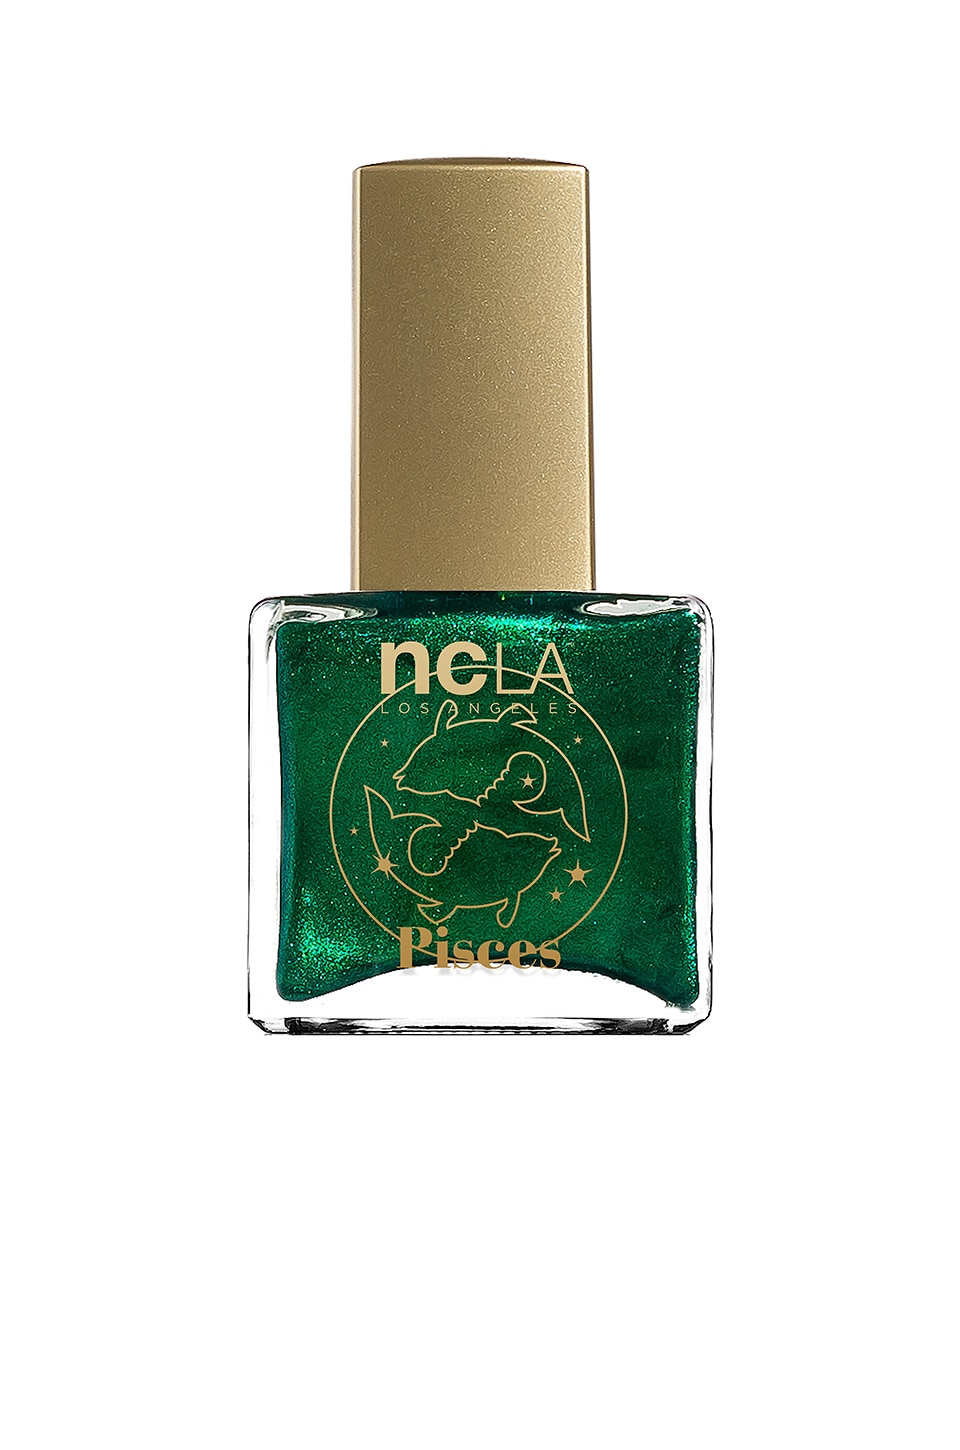 NCLA What's Your Sign? Pisces Lacquer in Bright Metallic Green